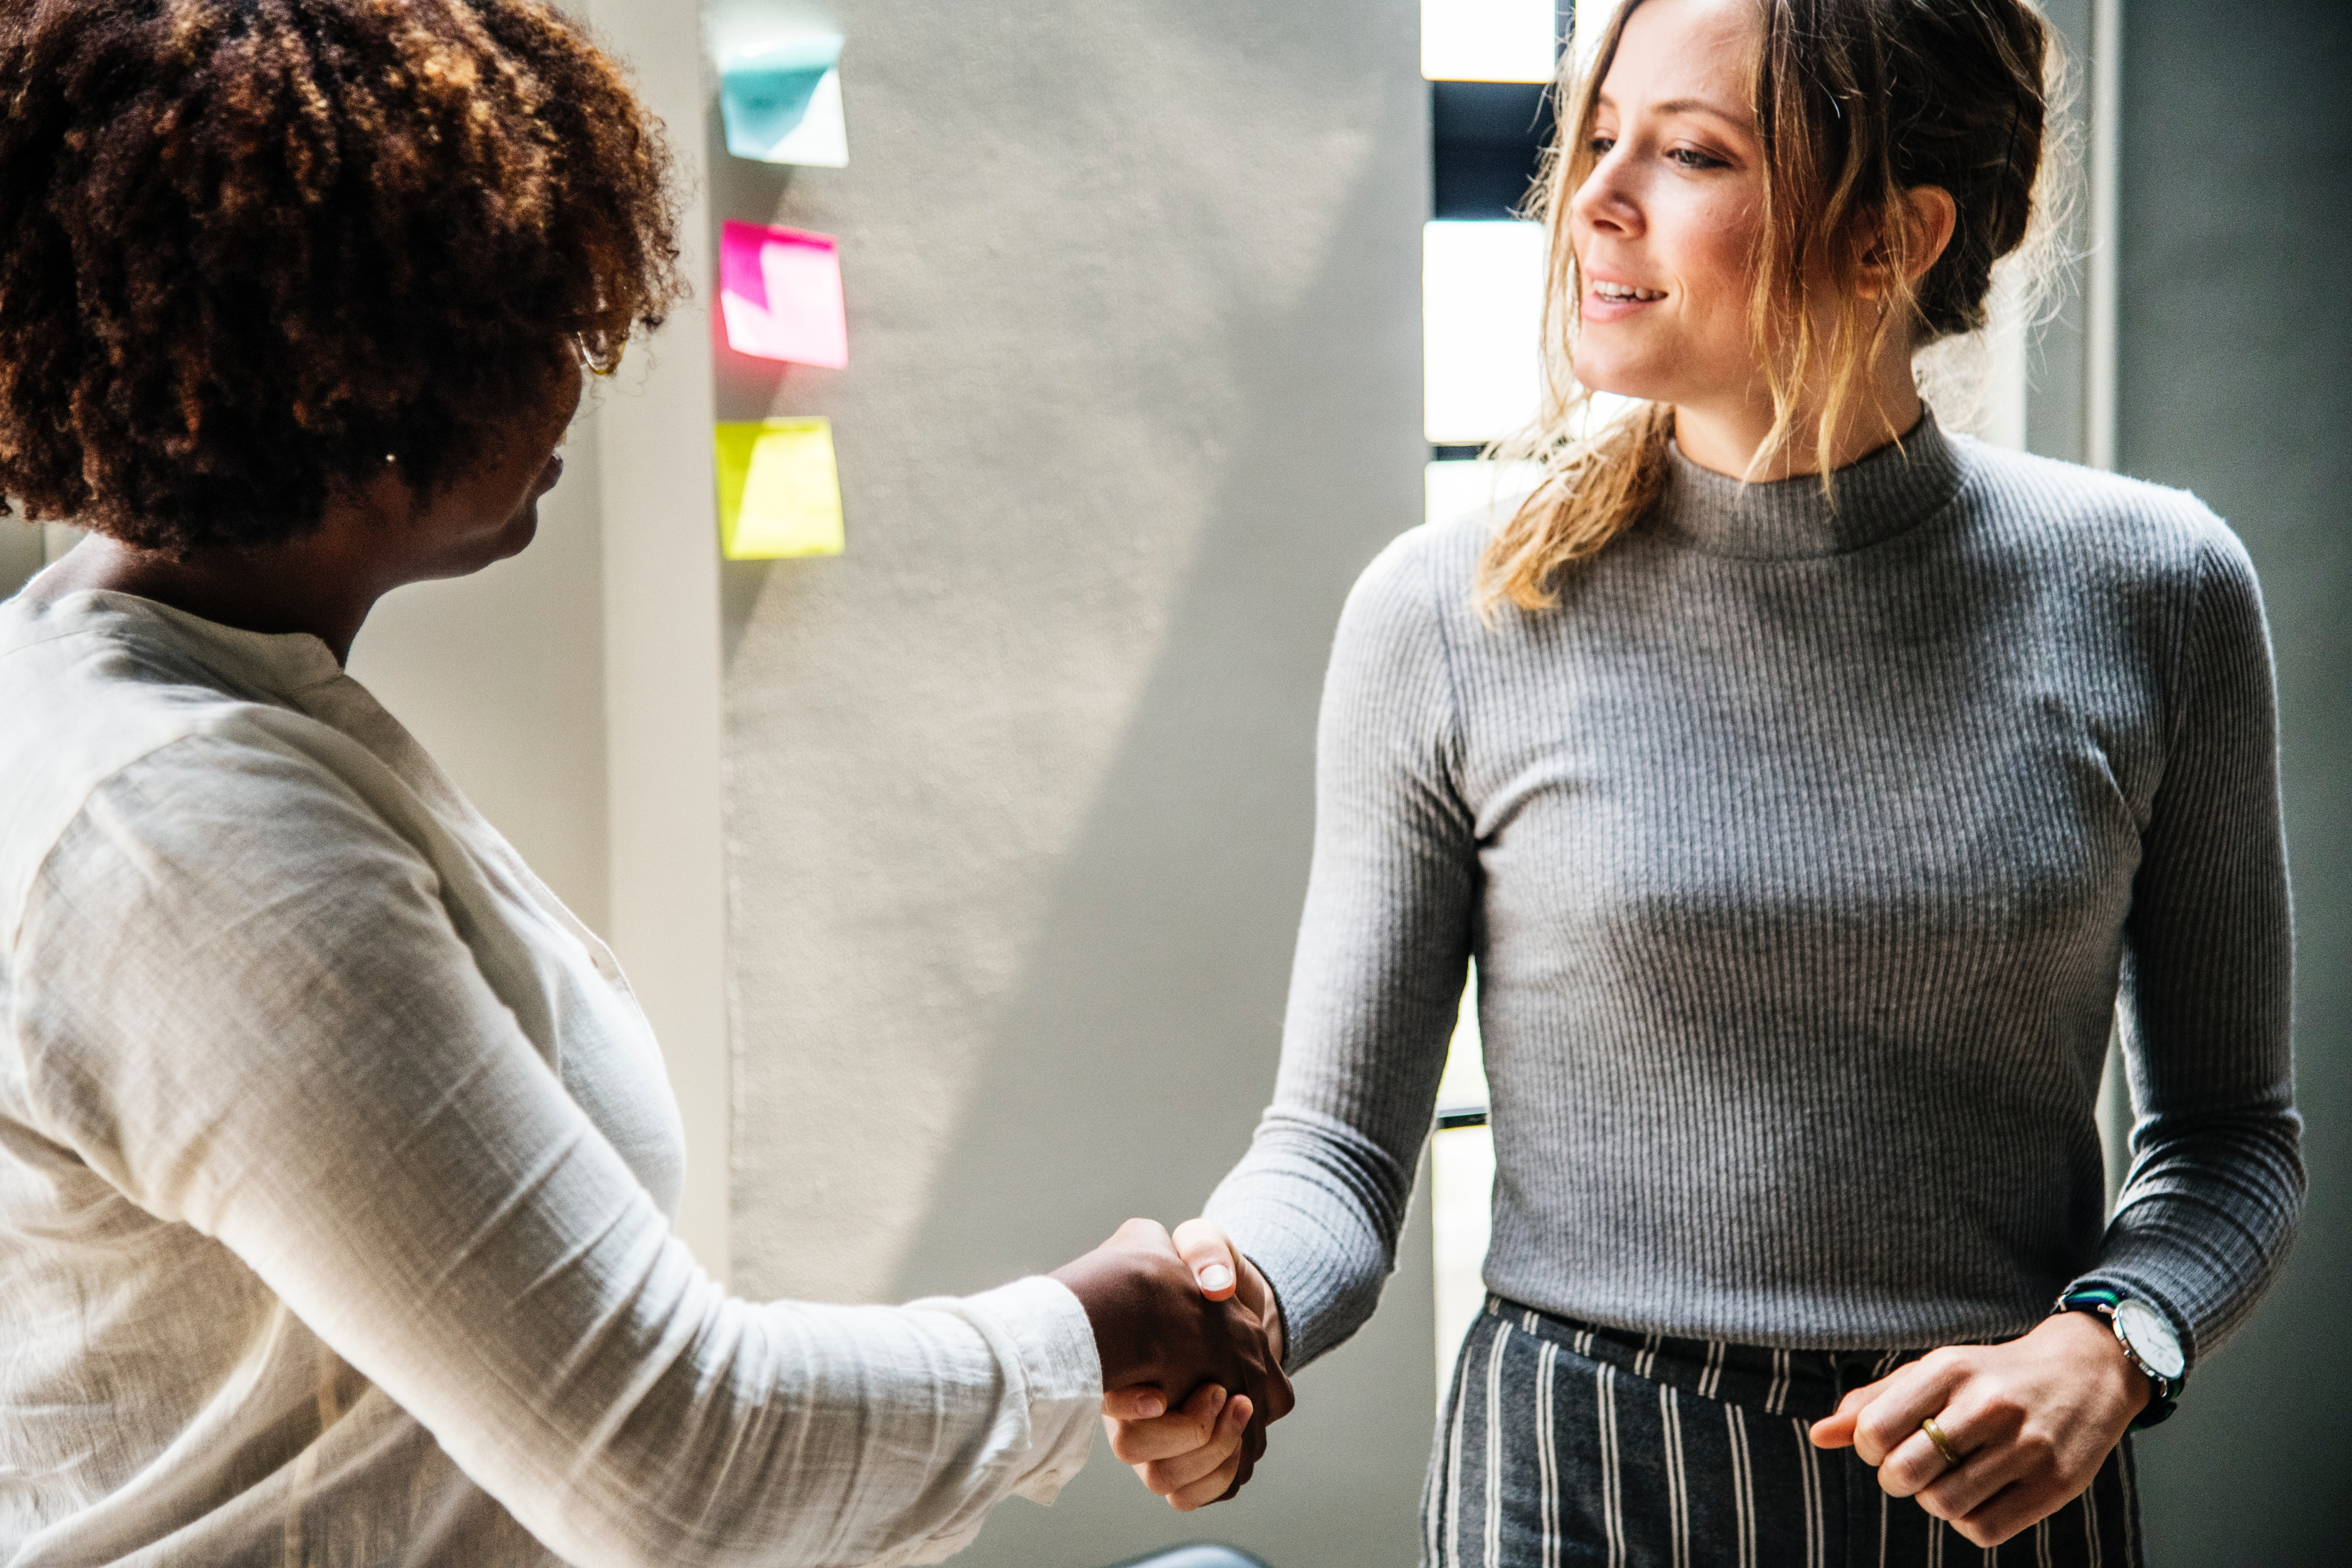 Women in Finance Shake Hands